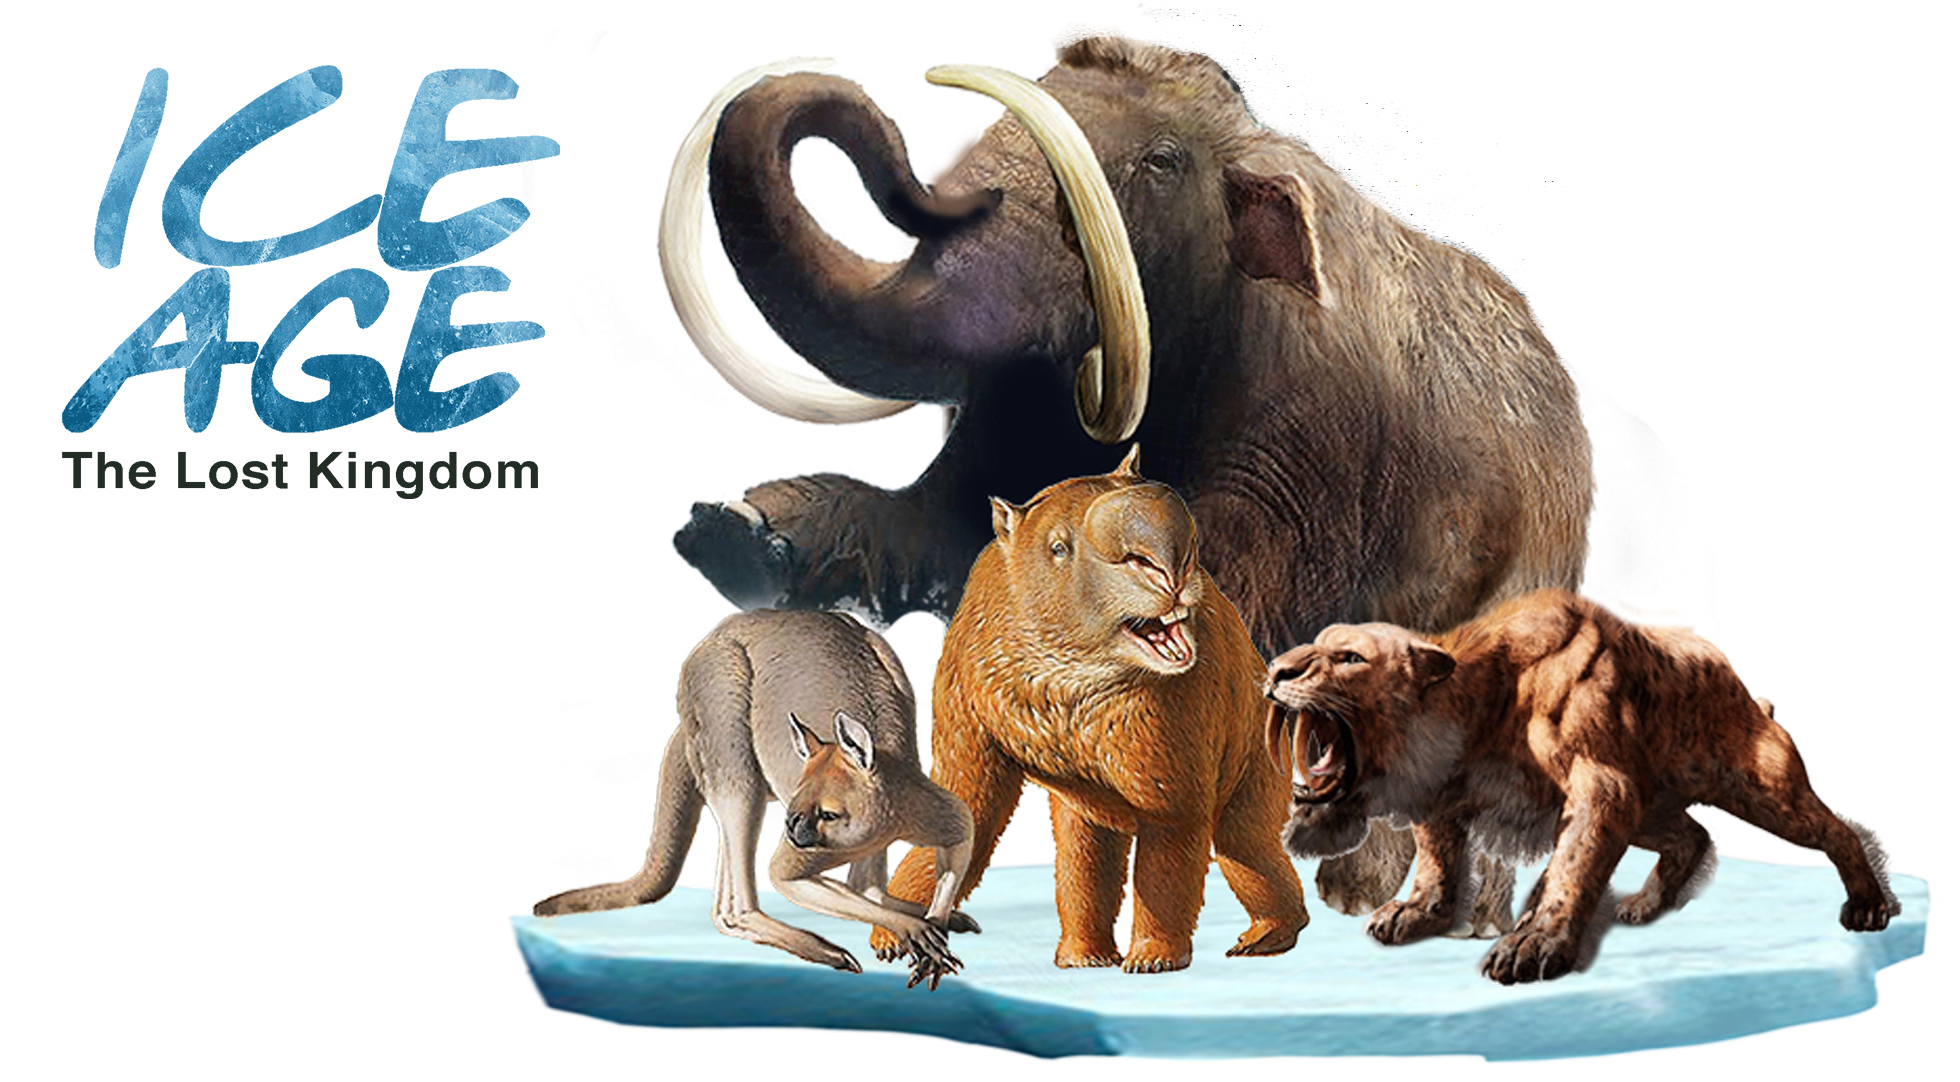 Tickets are now sale for Ice Age: The Lost Kingdom